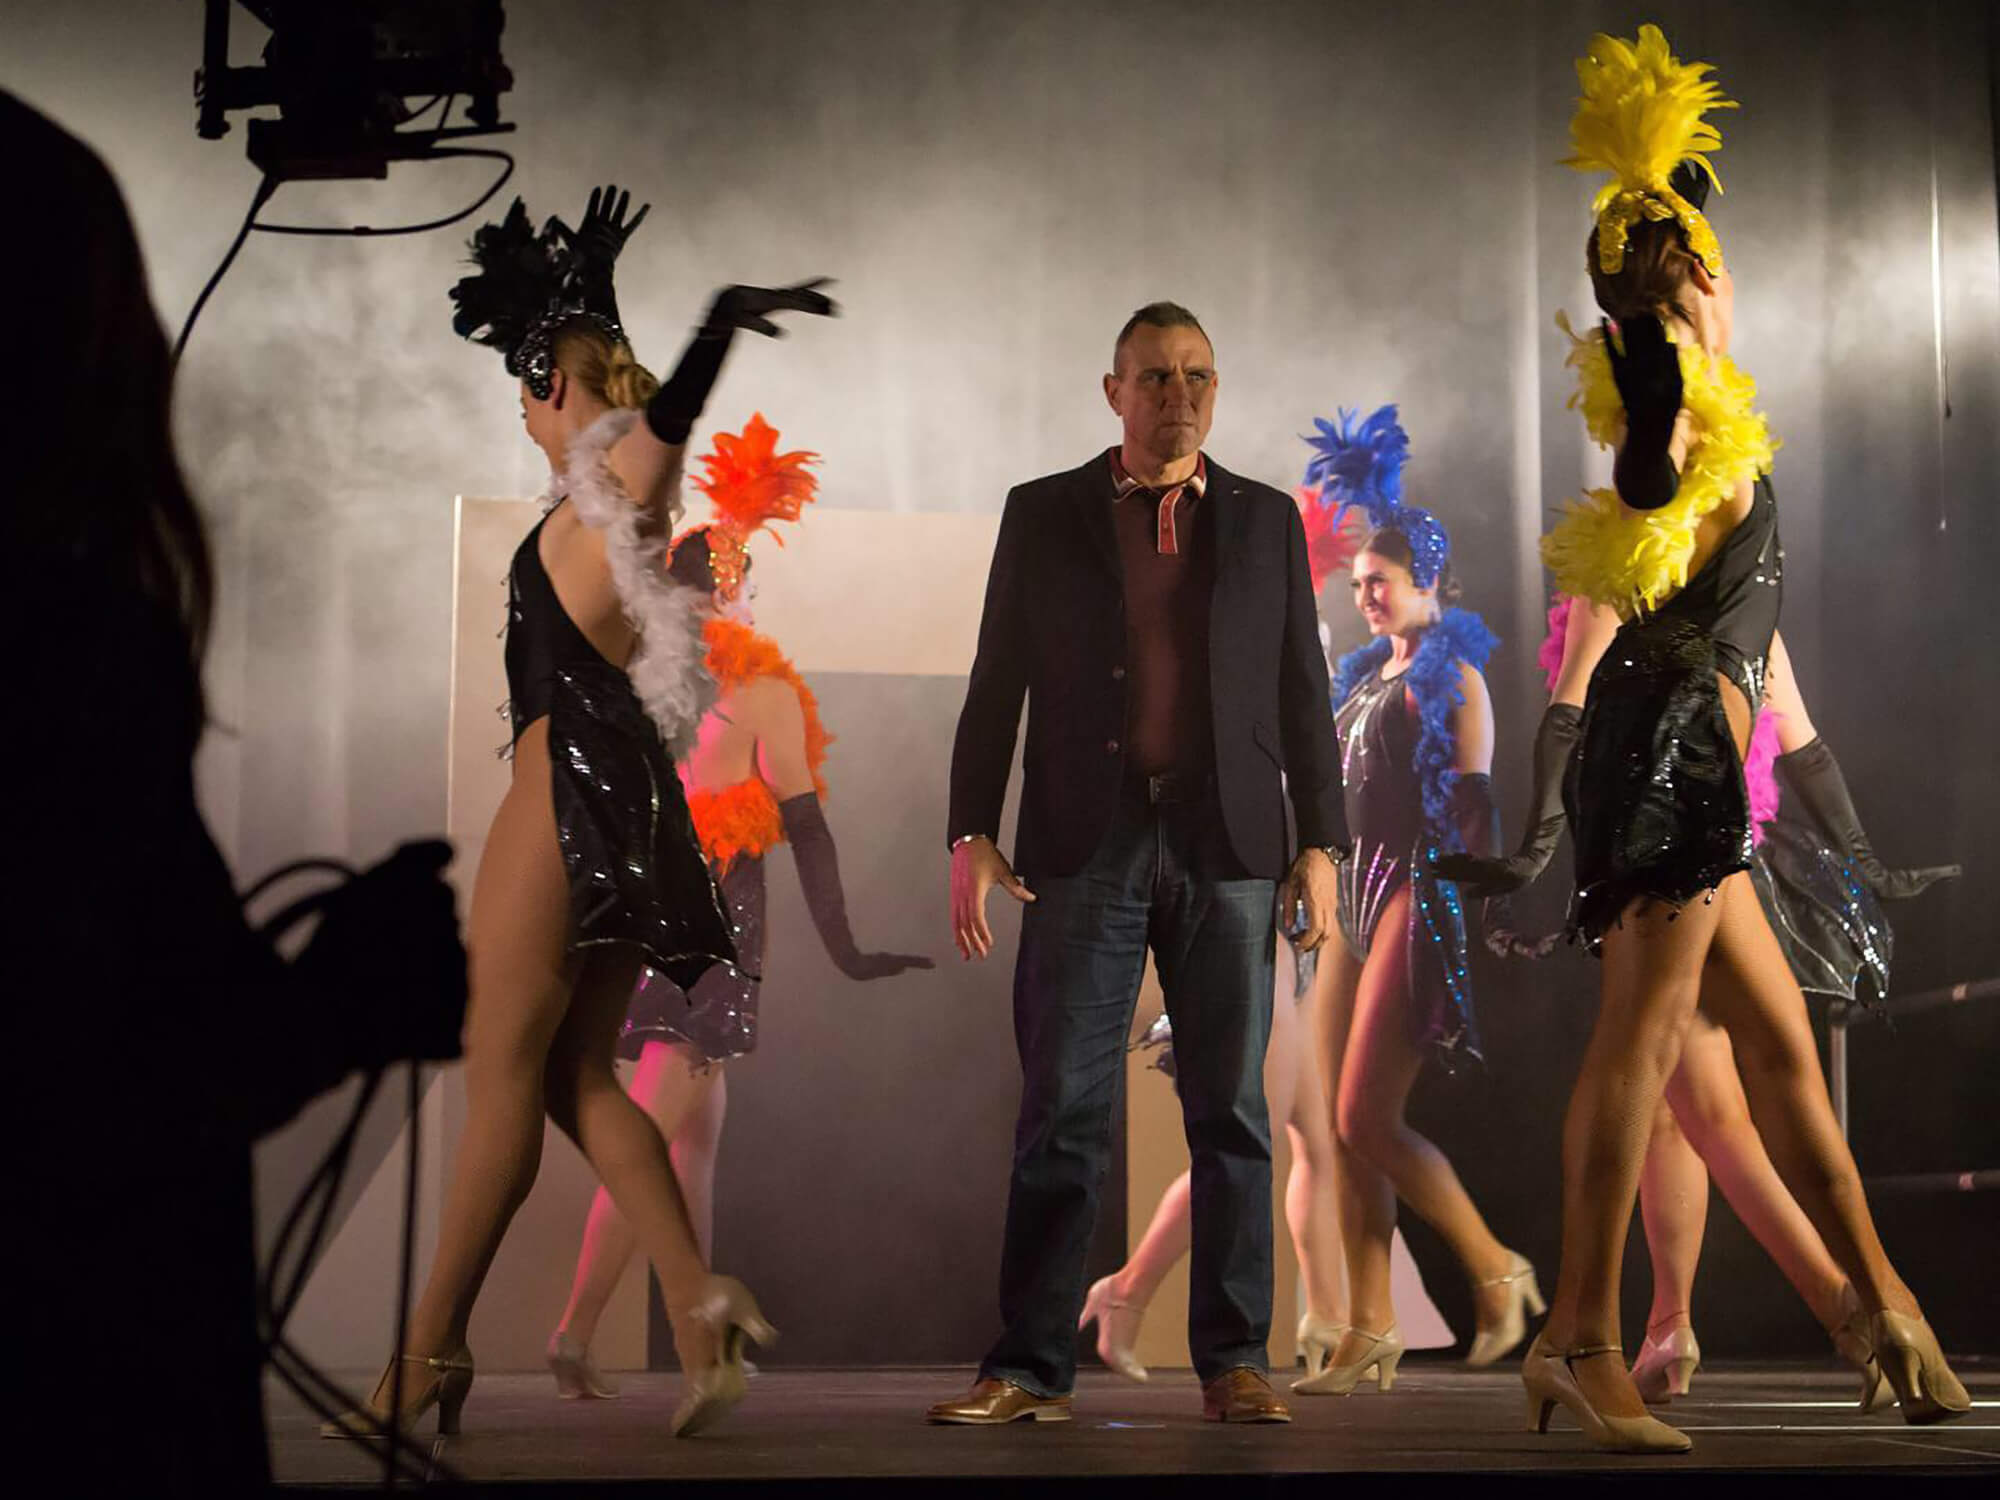 Darley Dance Production performers on the set of the feature film Madness In The Method with actor Vinnie Jones